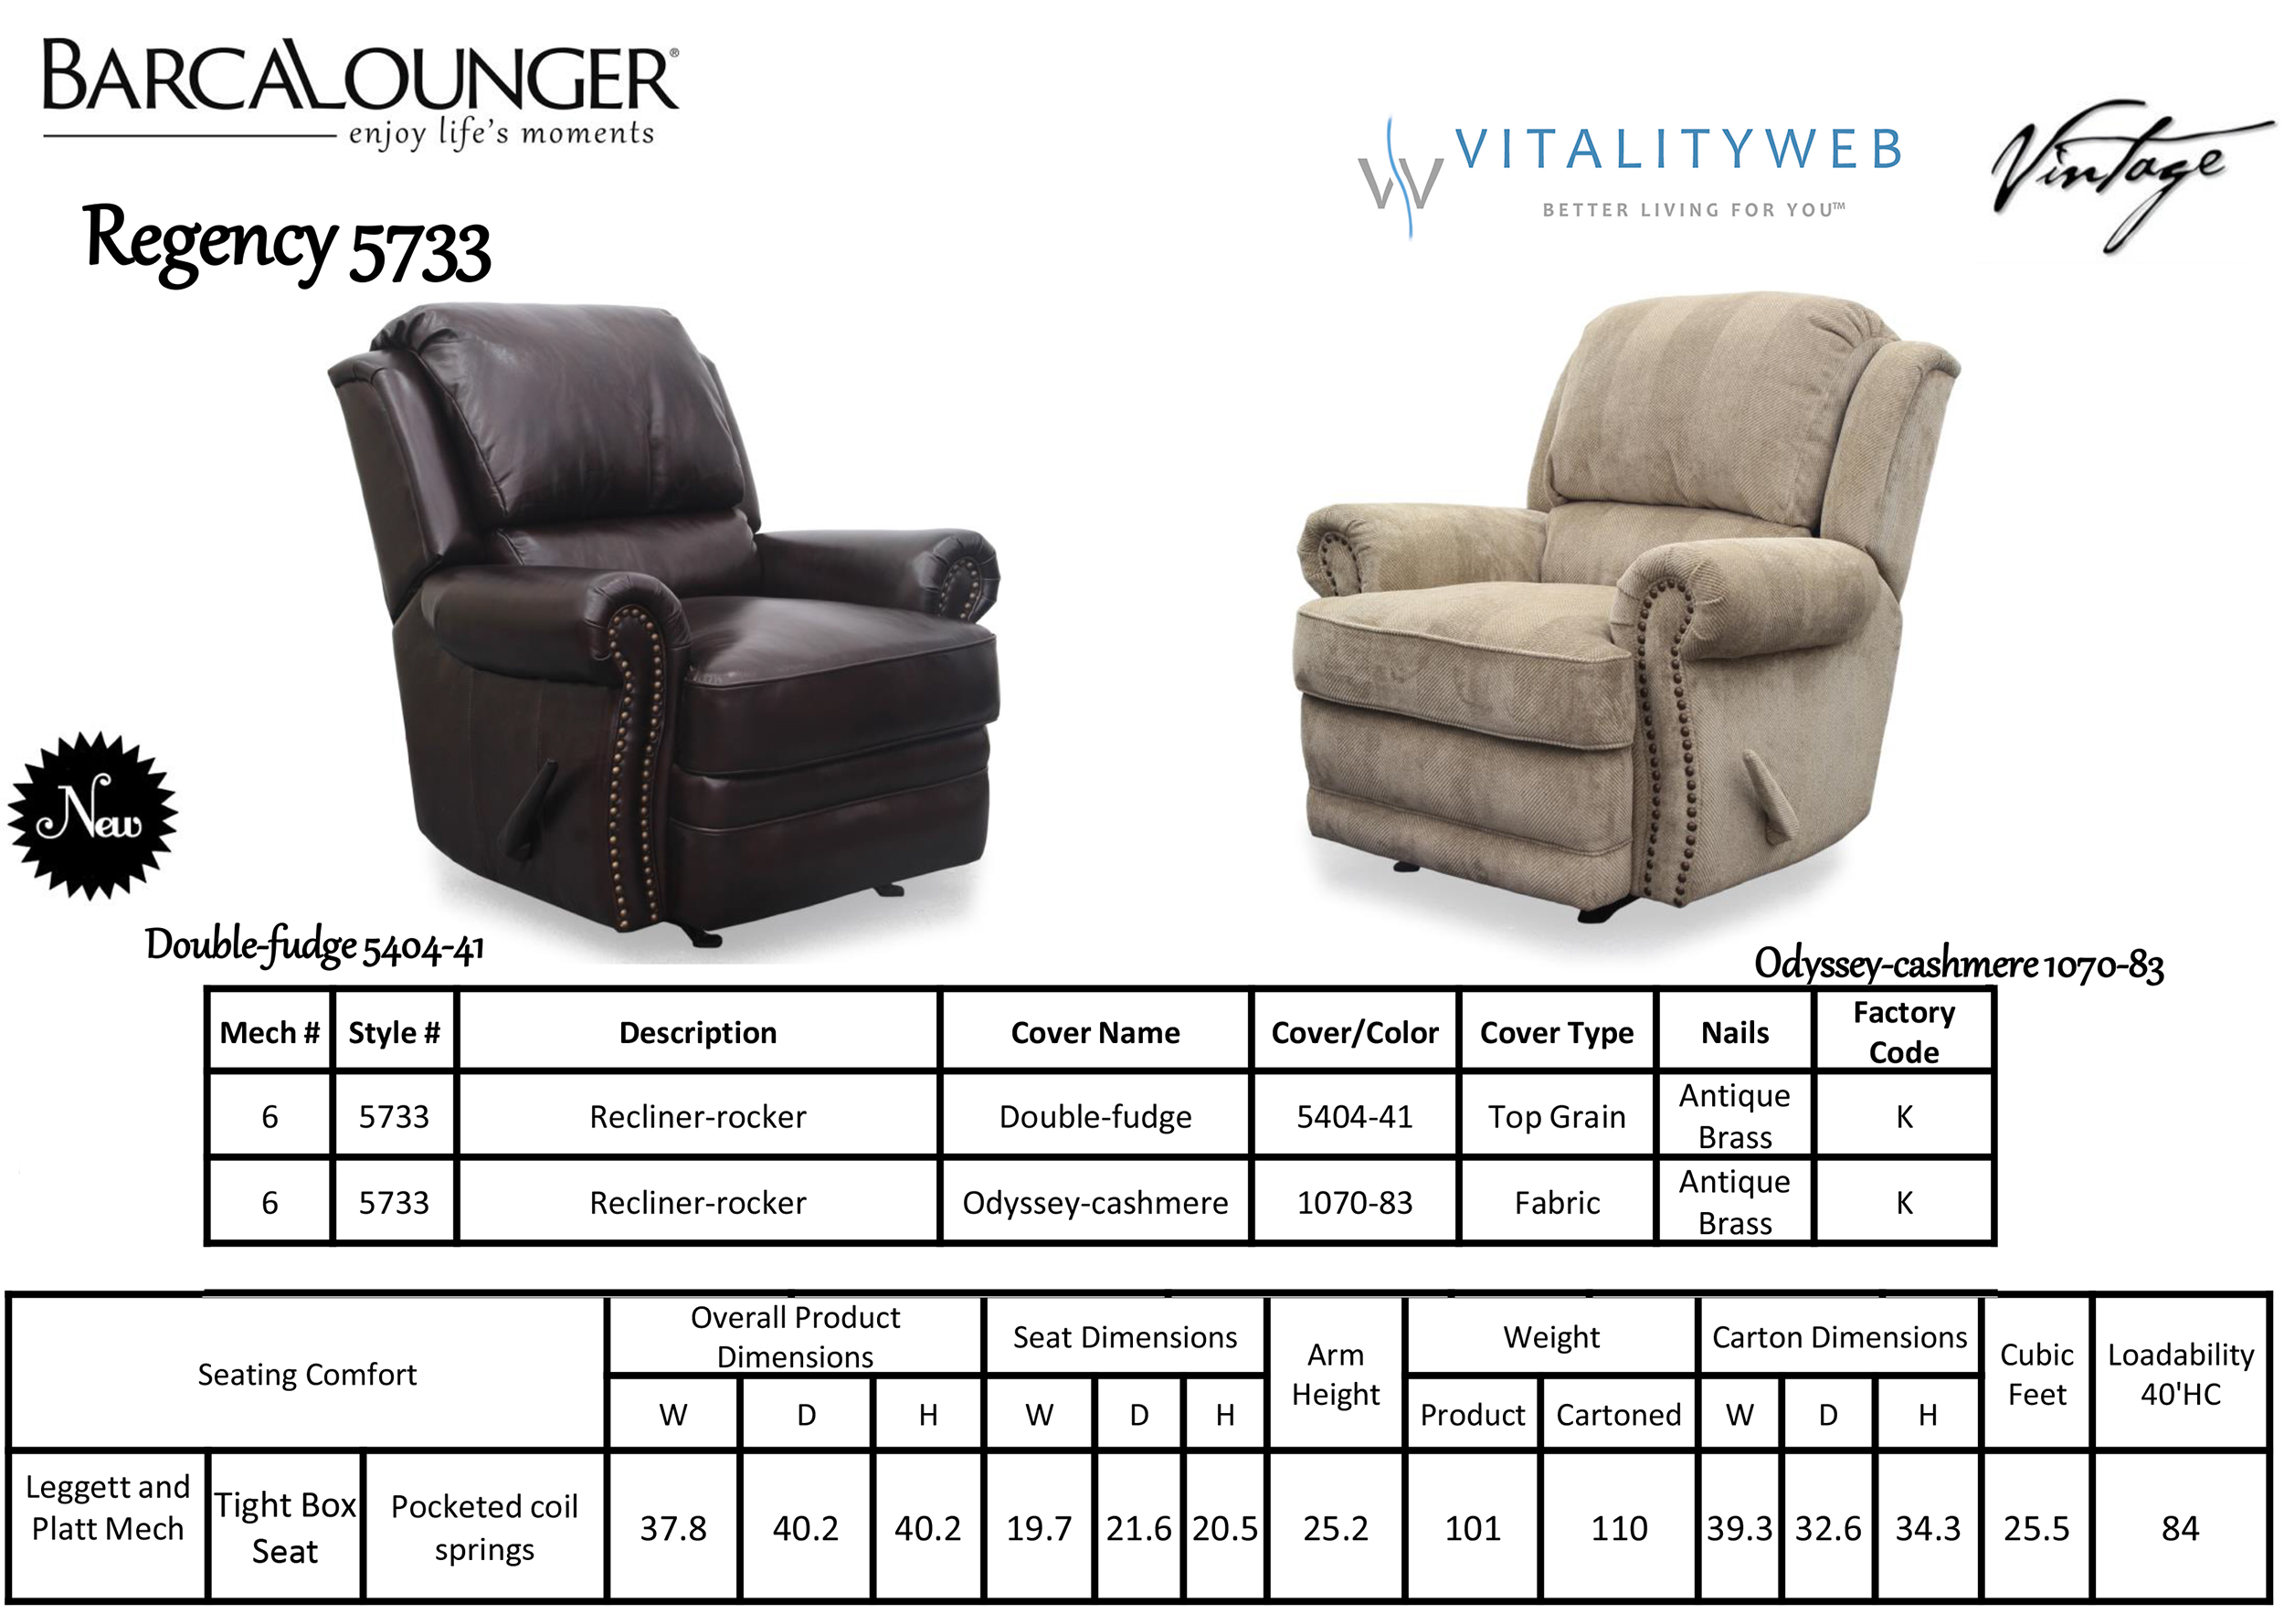 Barcalounger Regency II 5733 Leather Recliner Chair Dimensions  sc 1 st  Vitalityweb.com & Barcalounger Regency II Leather Recliner Chair - Leather Recliner ... islam-shia.org